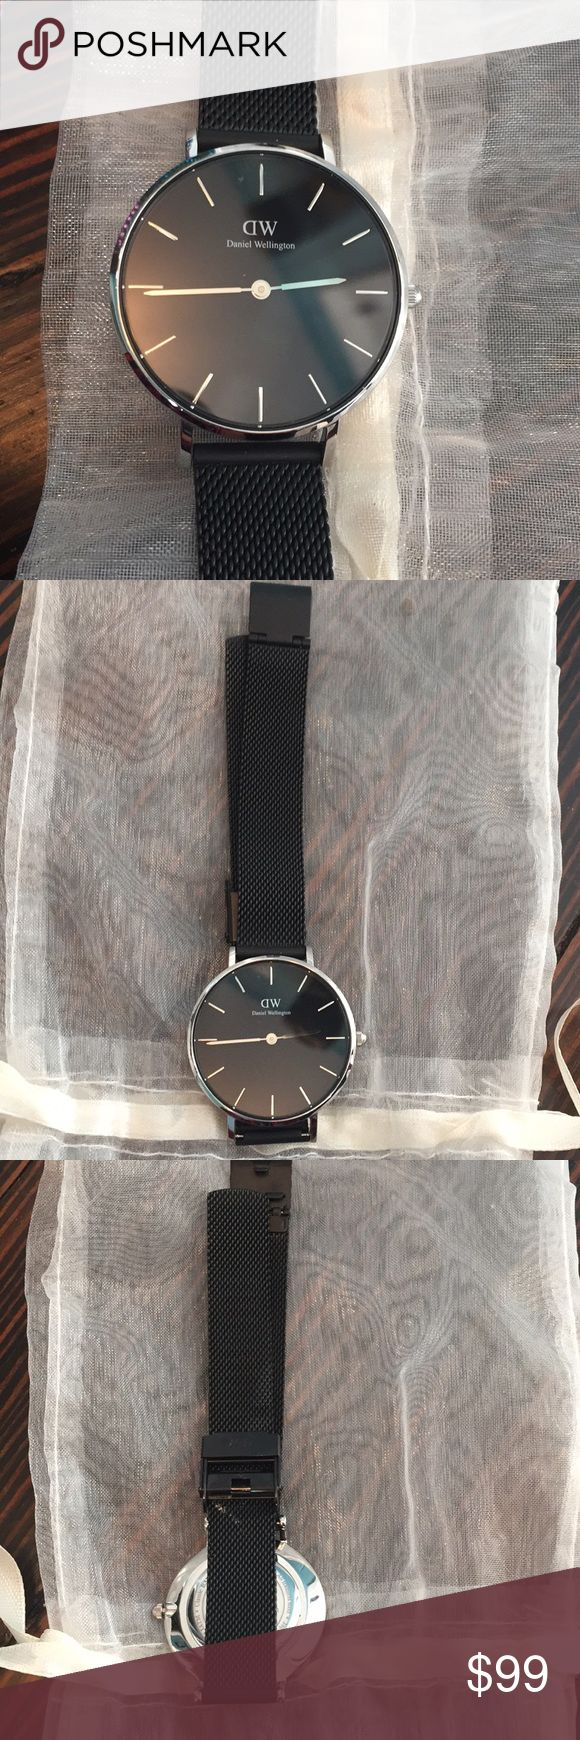 Daniel Wellington Ashfield Petite Stainless Watch In excellent preowned condition  Battery still works Small scratch on band (see pic)  Daniel Wellington stainless steel watch Deployment fastening Stainless steel case, black dial, branding at dial, Japanese quartz movement, mesh strap Case diameter: 32mm Water resistance: 30m Daniel Wellington Accessories Watches